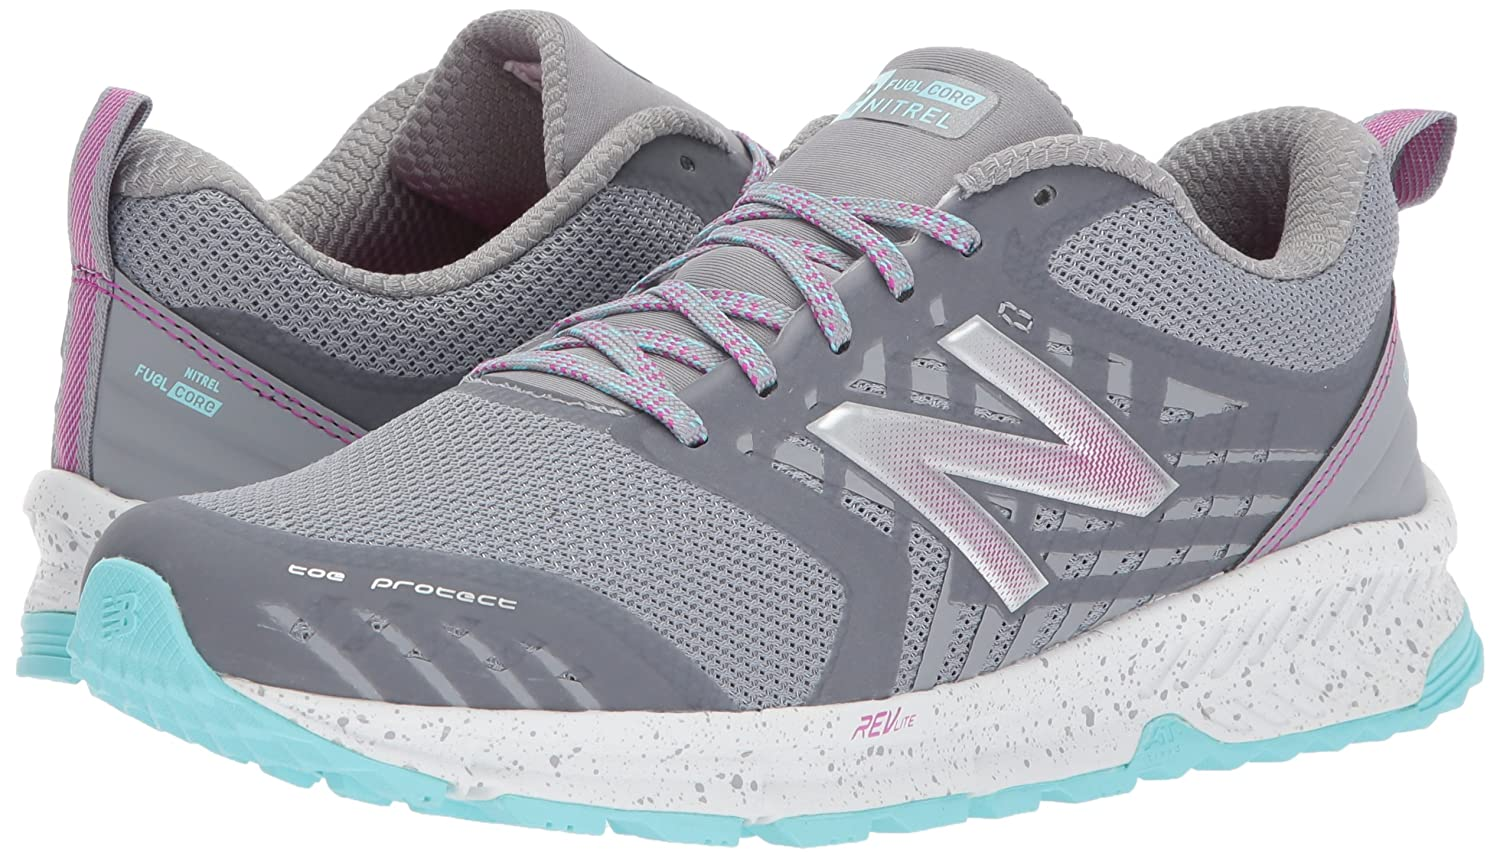 088c5468d8 Amazon.com | New Balance Women's Nitrel v1 FuelCore Trail Running Shoe,  Steel, 5.5 B US | Trail Running